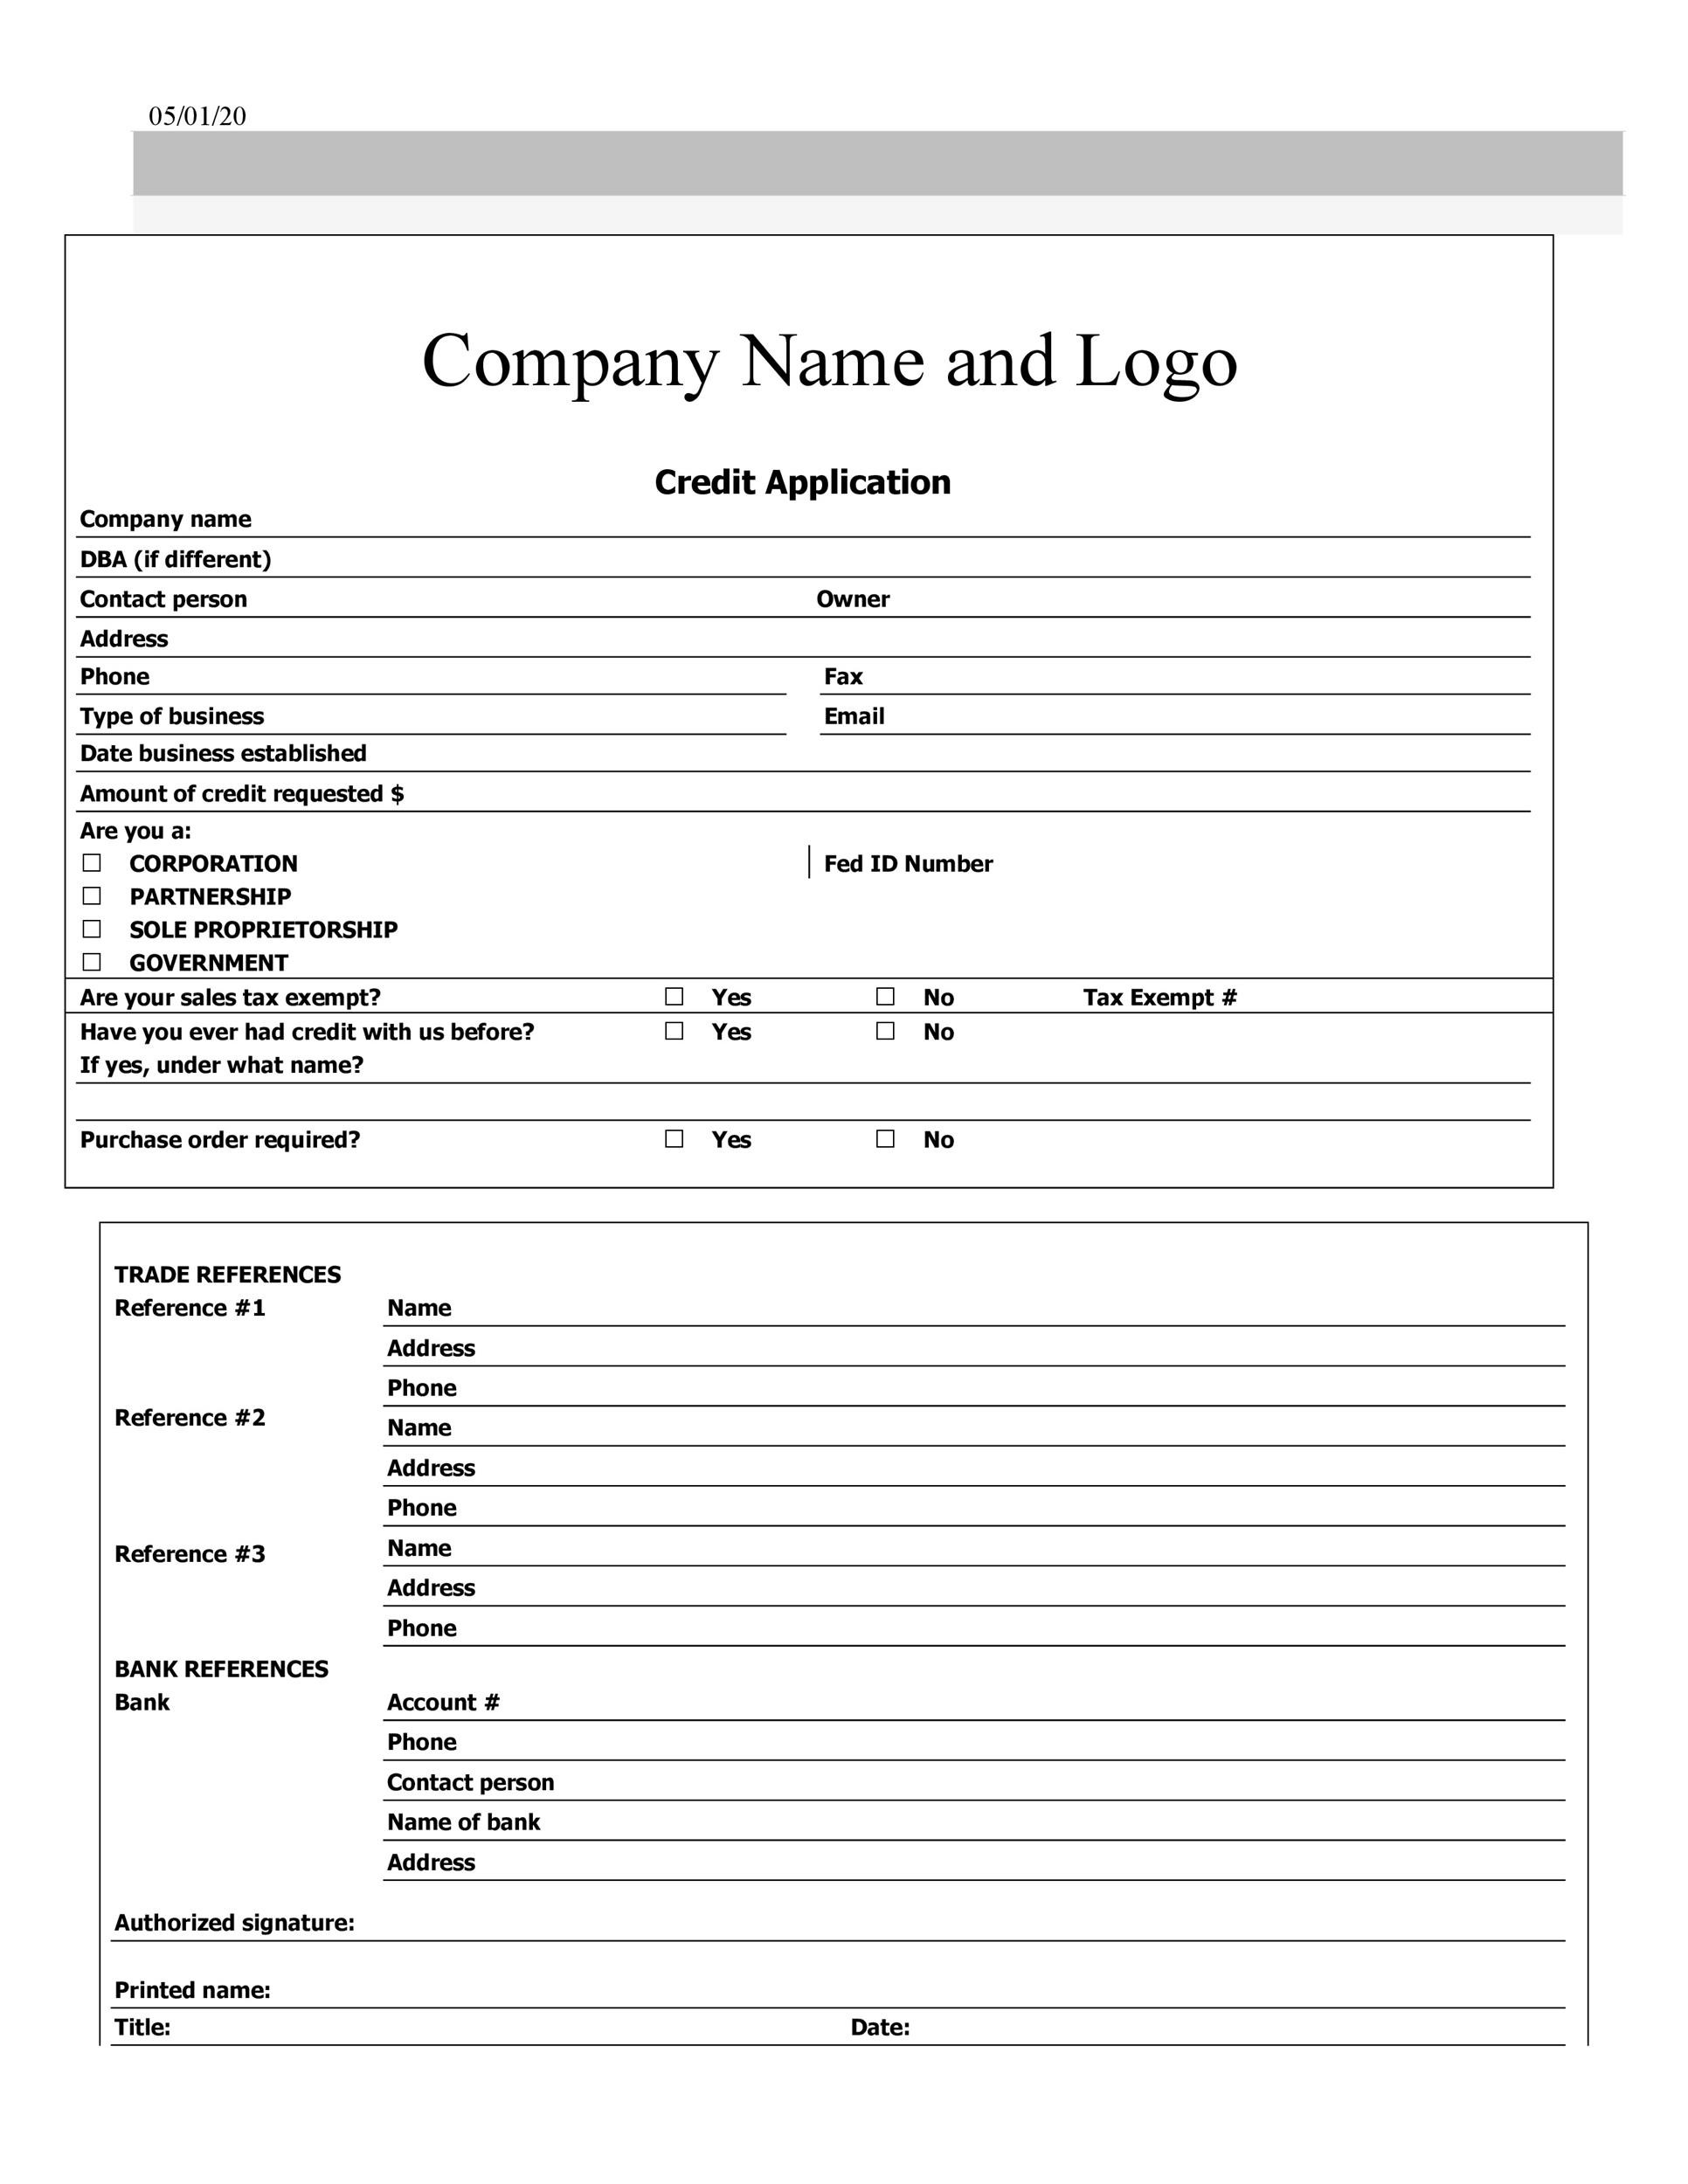 Free Credit Application Form 34